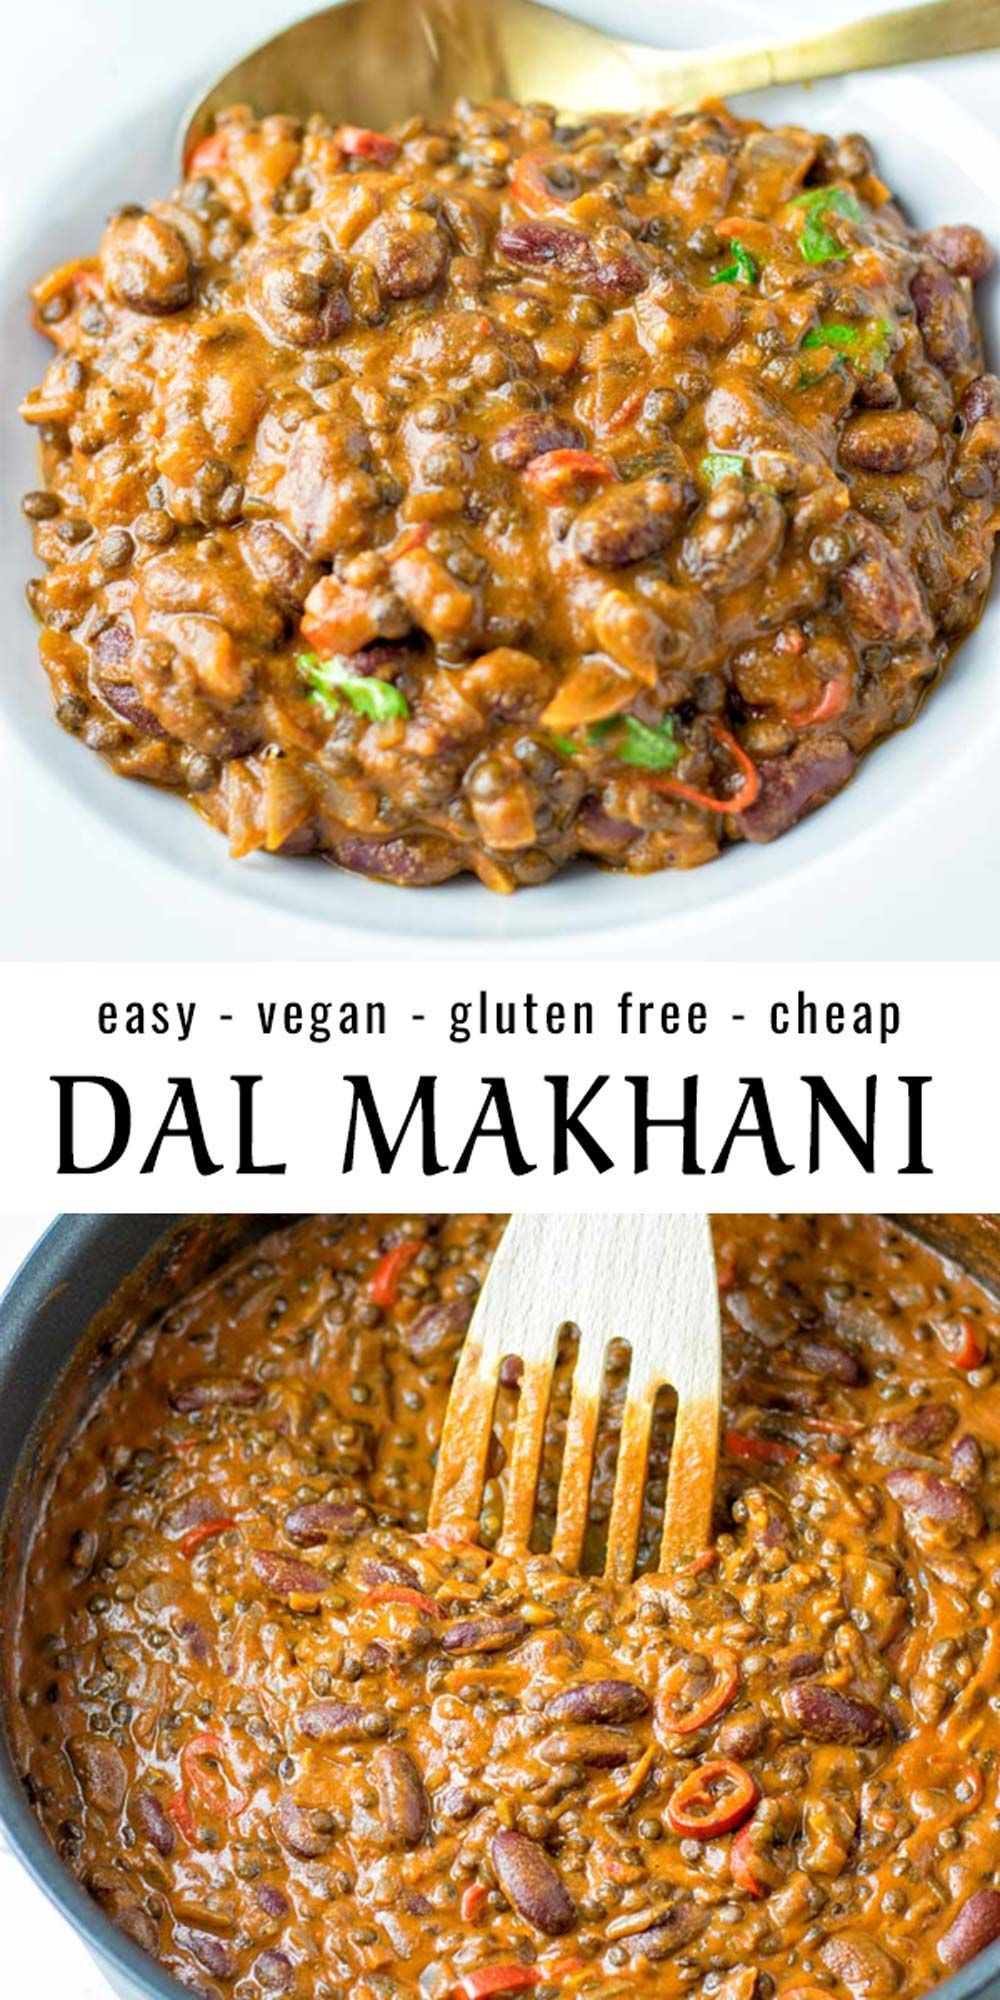 Photo of Dal Makhani